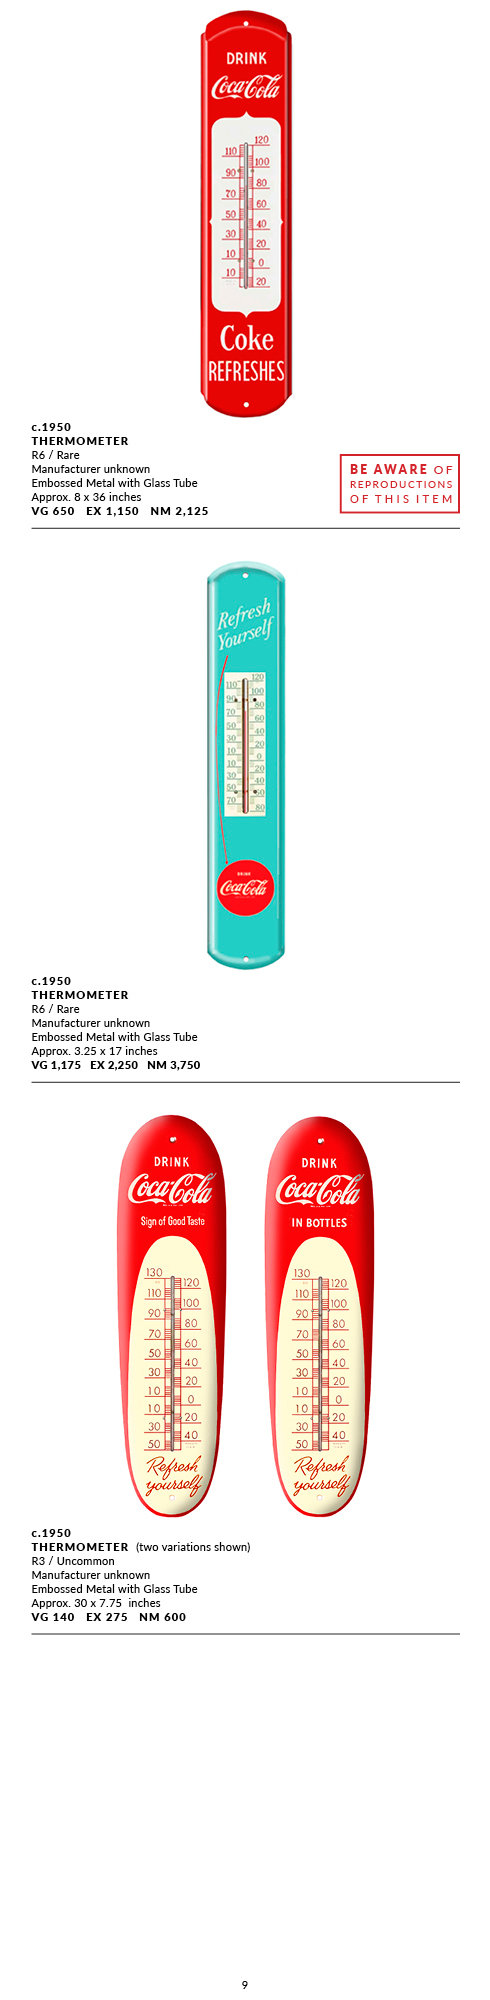 Thermometers copy9.jpg